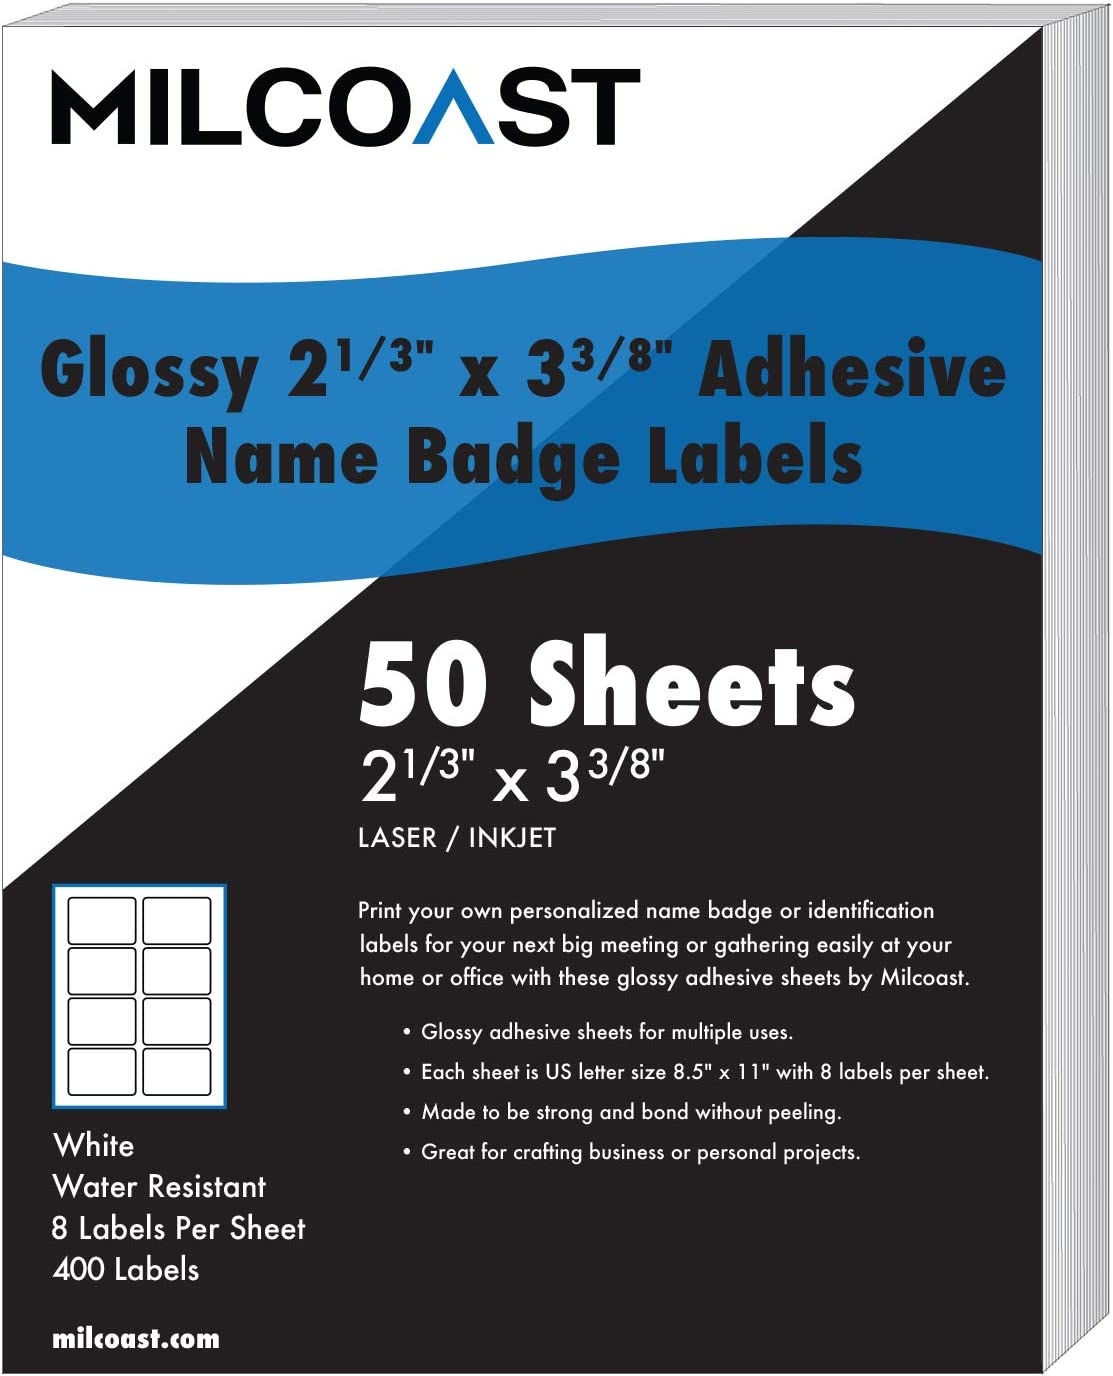 "Milcoast Glossy Adhesive Name Badge Label Stickers 2-1/3"" x 3-3/8"" - for Laser/Inkjet Printers - 400 Labels (50 Sheets)"